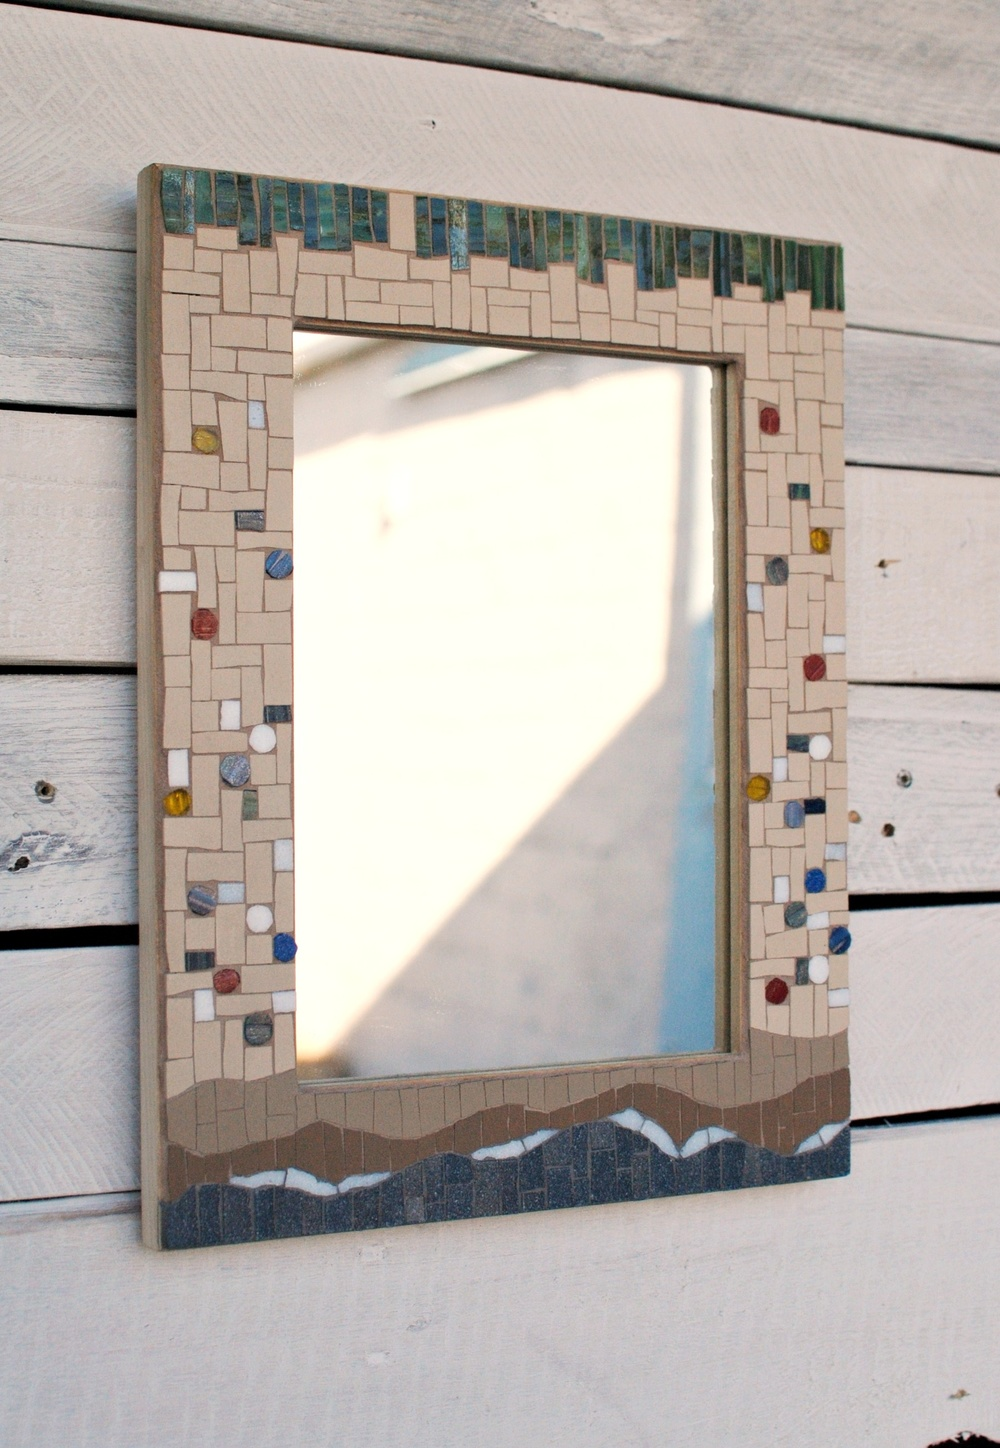 Oceanside-mosaic-mirror-PH2015.jpg